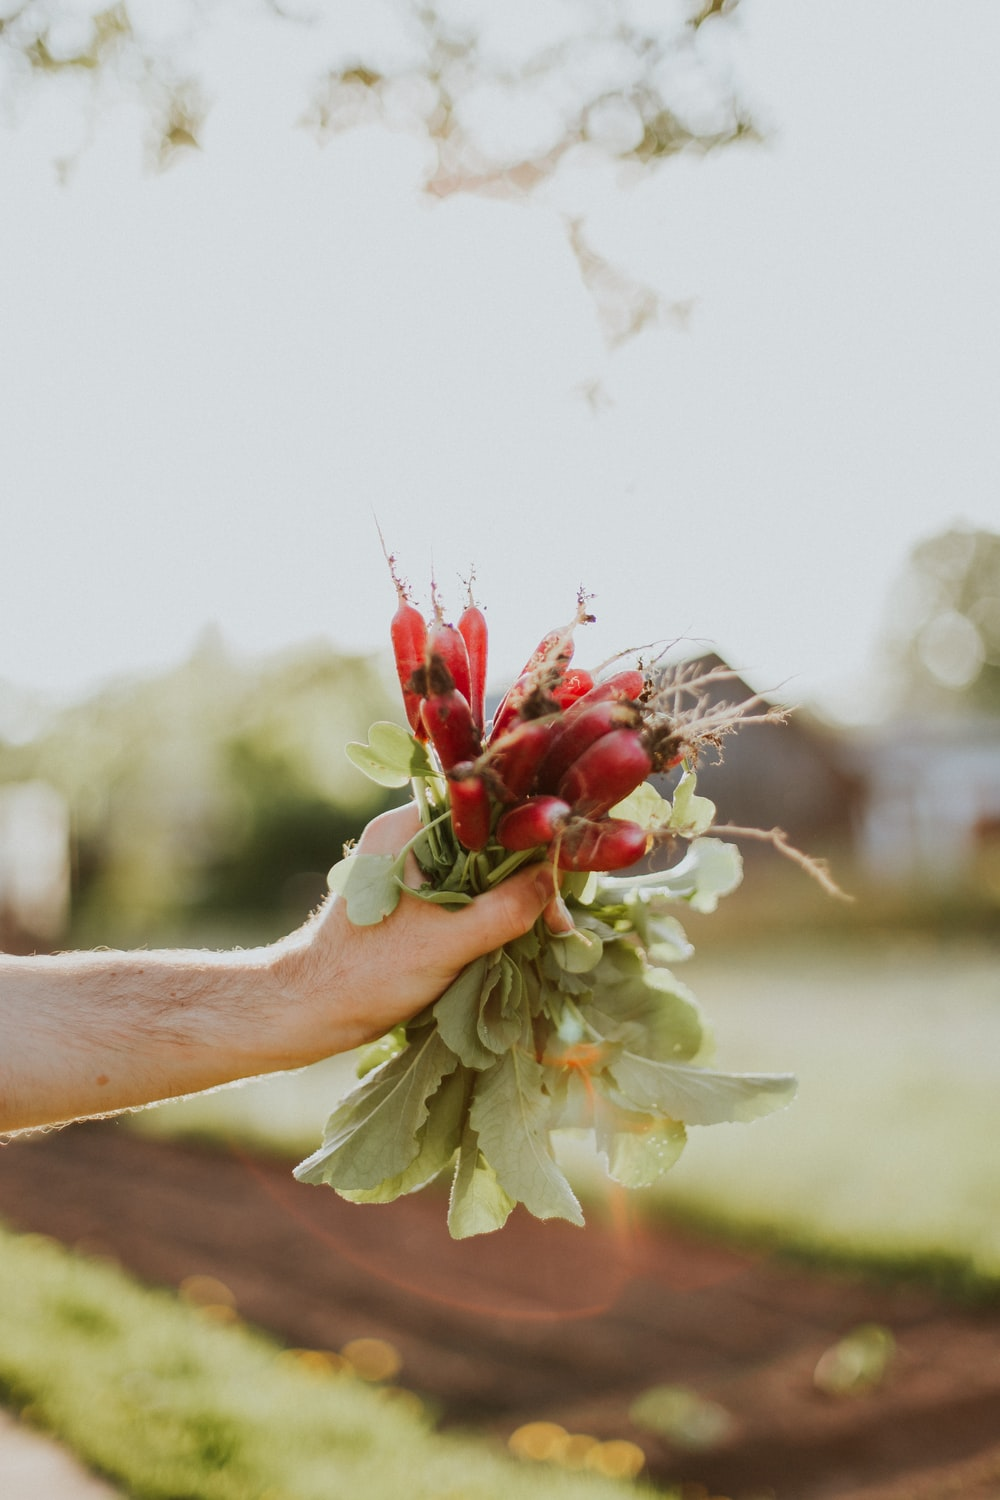 person holding leafed flowers